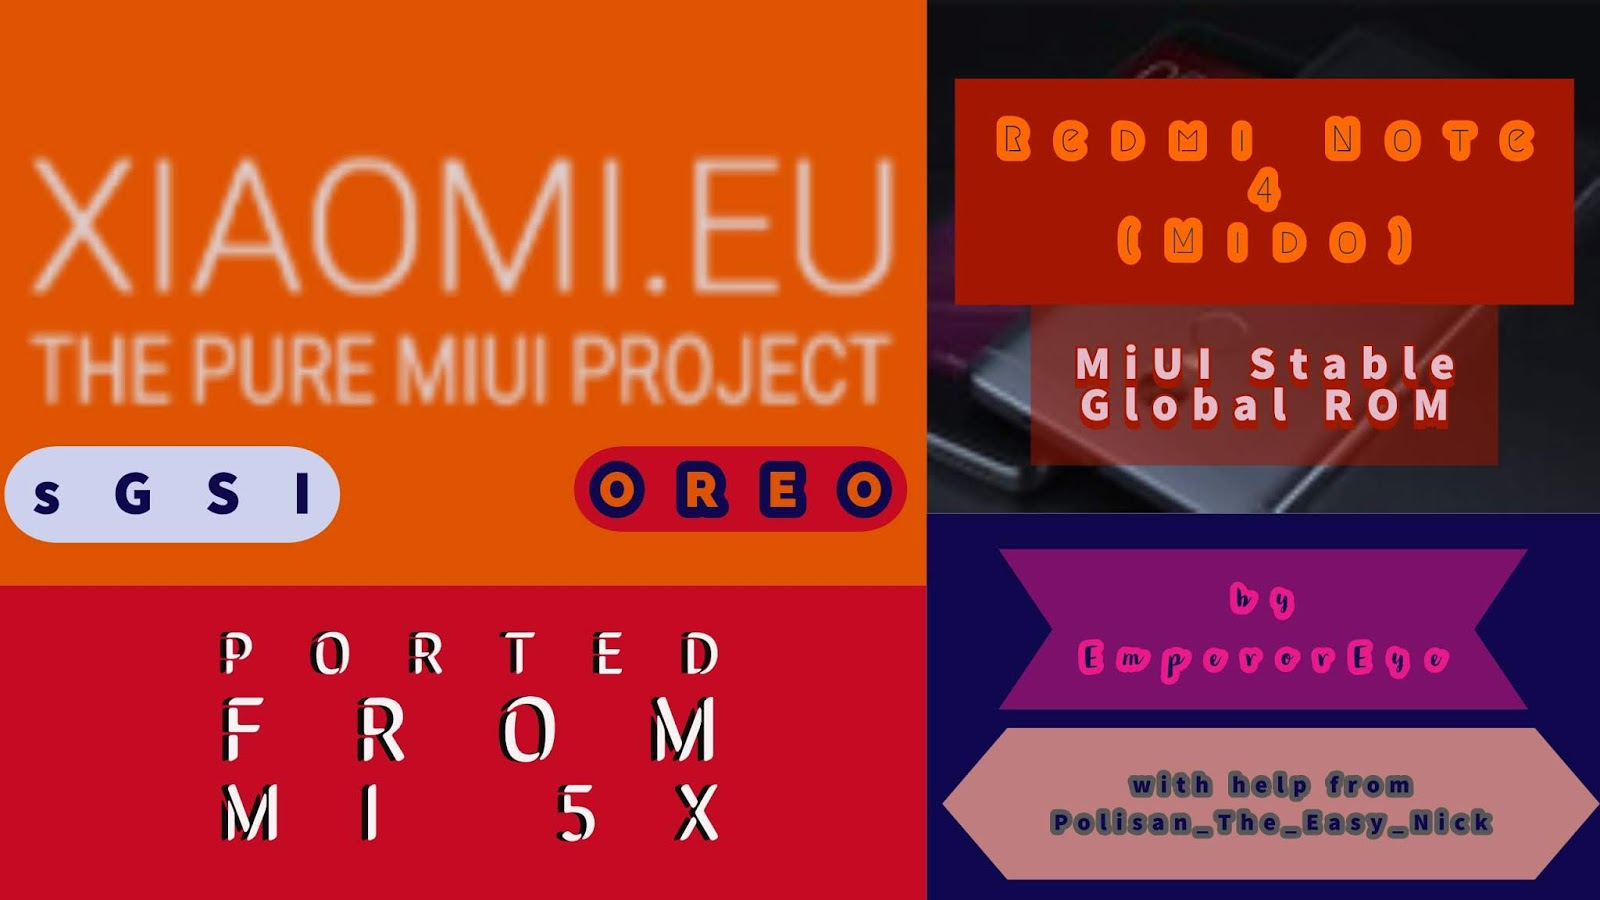 Xiaomi Eu Stable Global MiUI 10 Oreo sGSI for Redmi Note 4